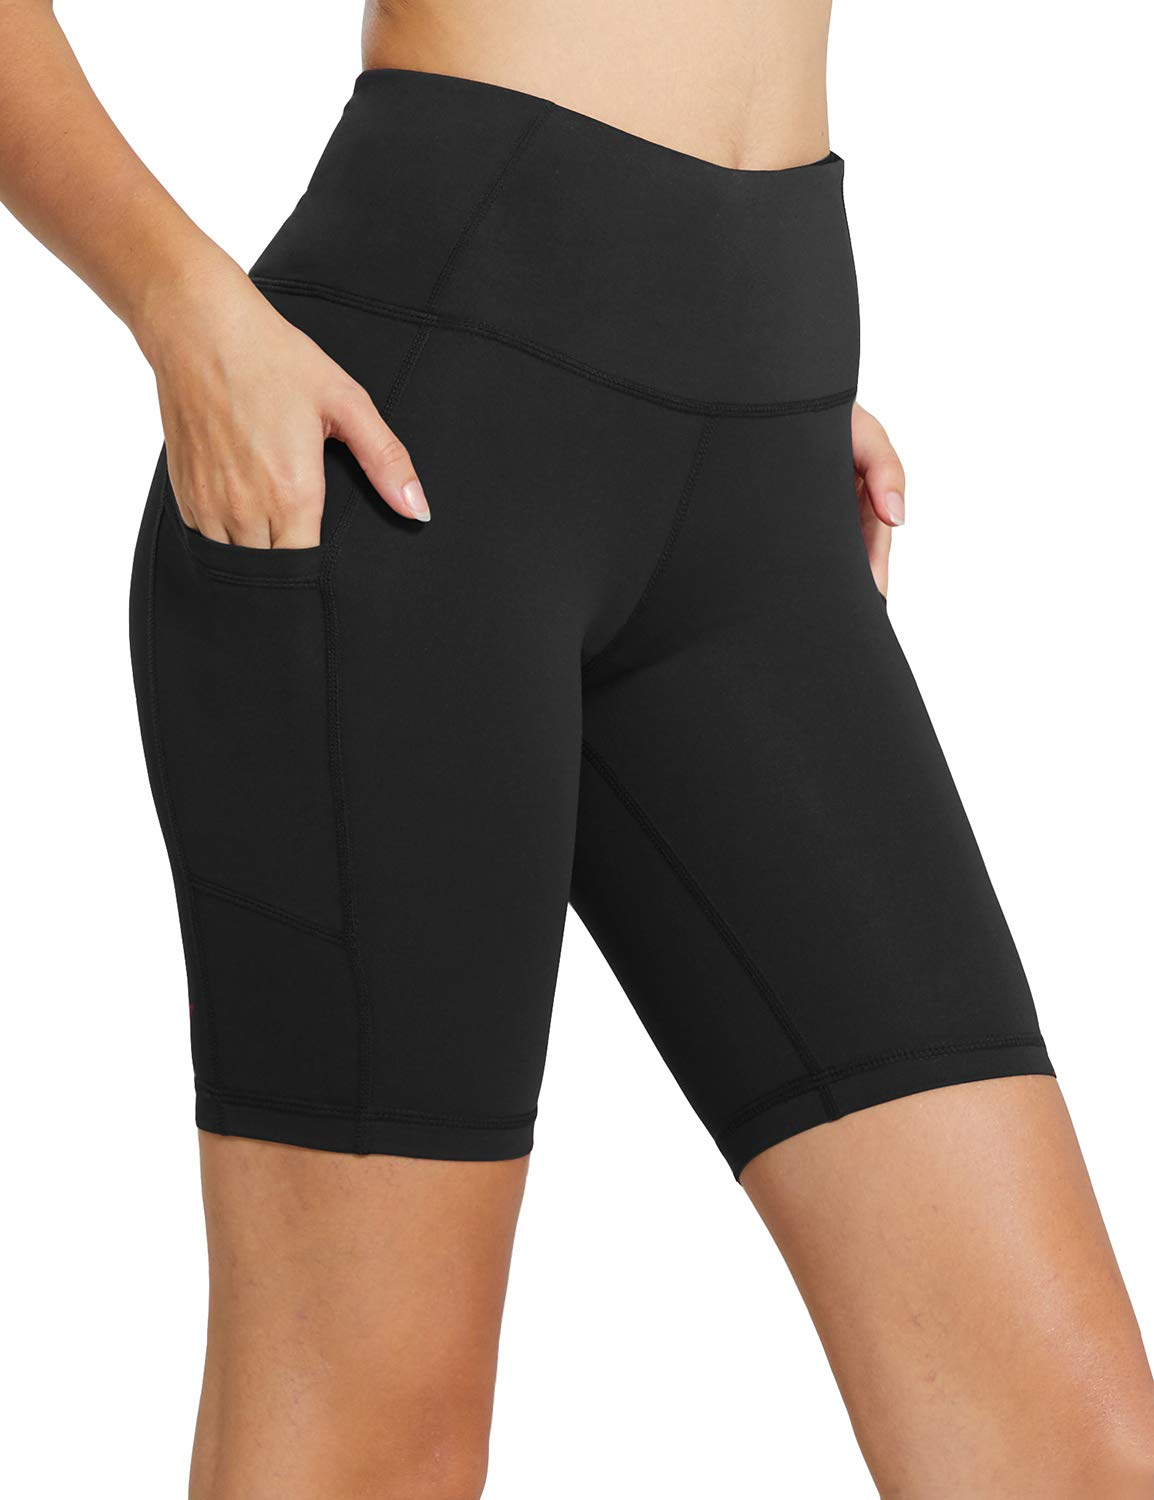 Baleaf Women's 8'' High Waist Workout Yoga Shorts Tummy Control Side Pockets Black Size S by Baleaf